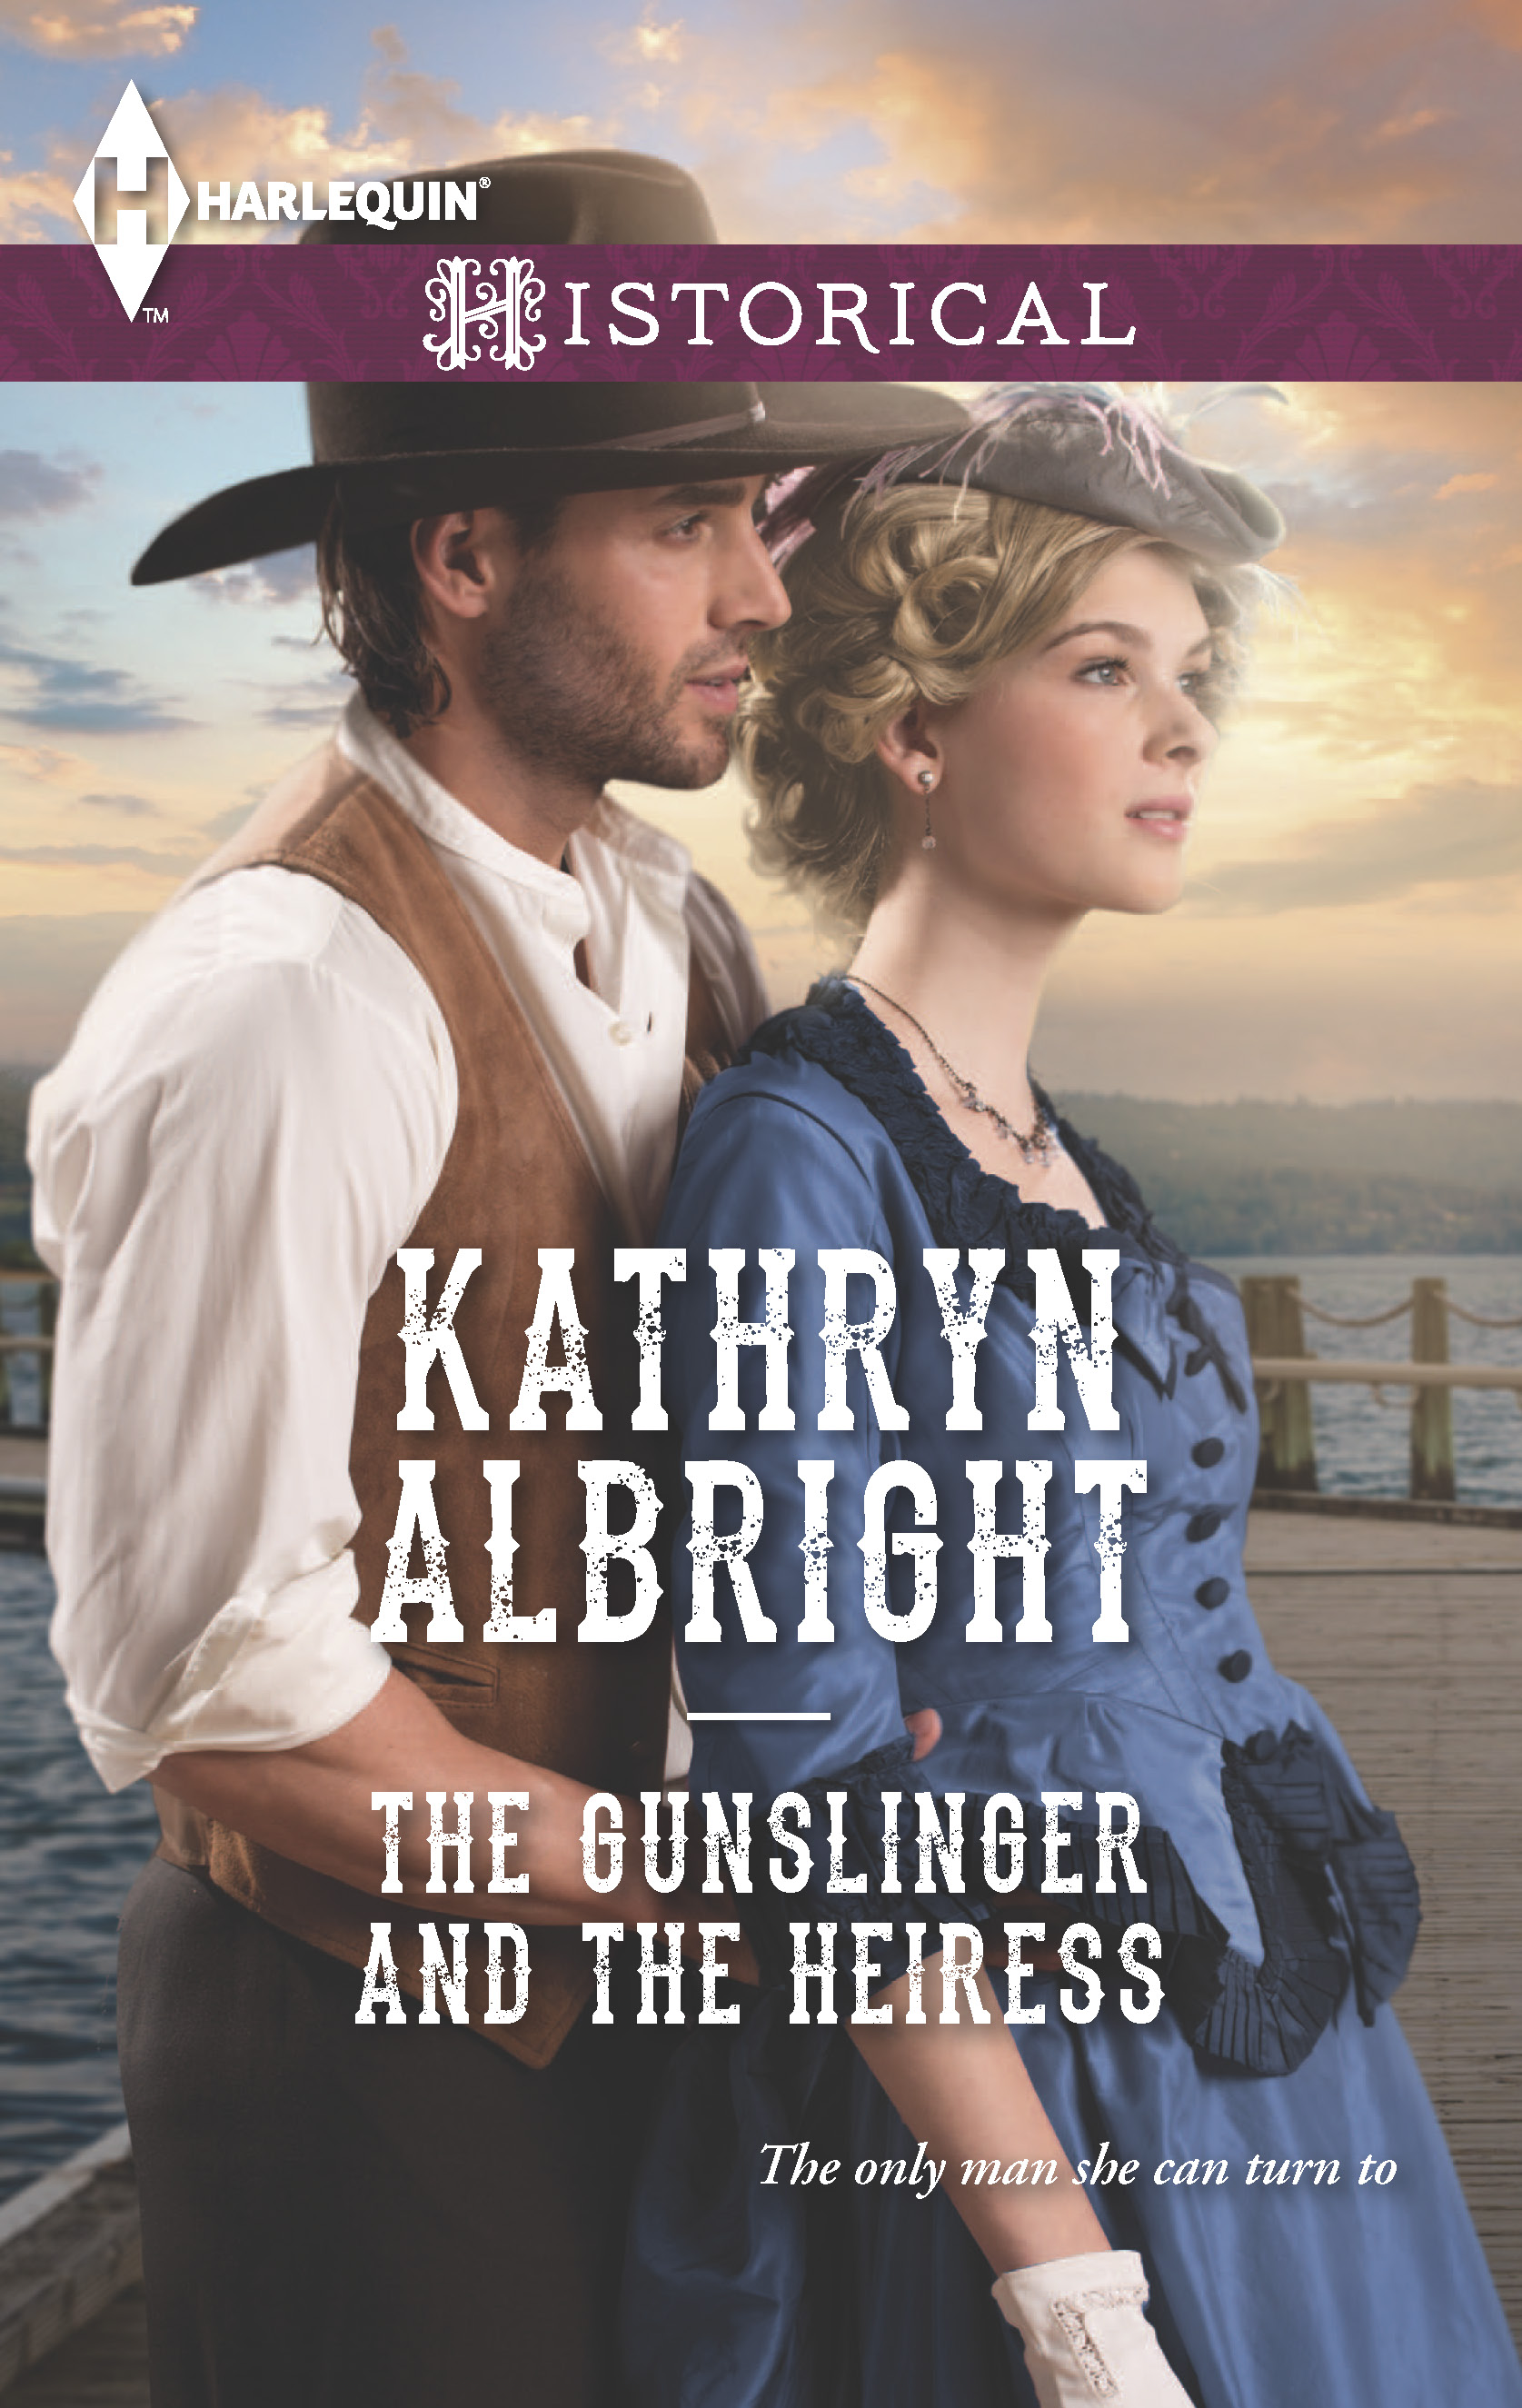 The Gunslinger and the Heiress